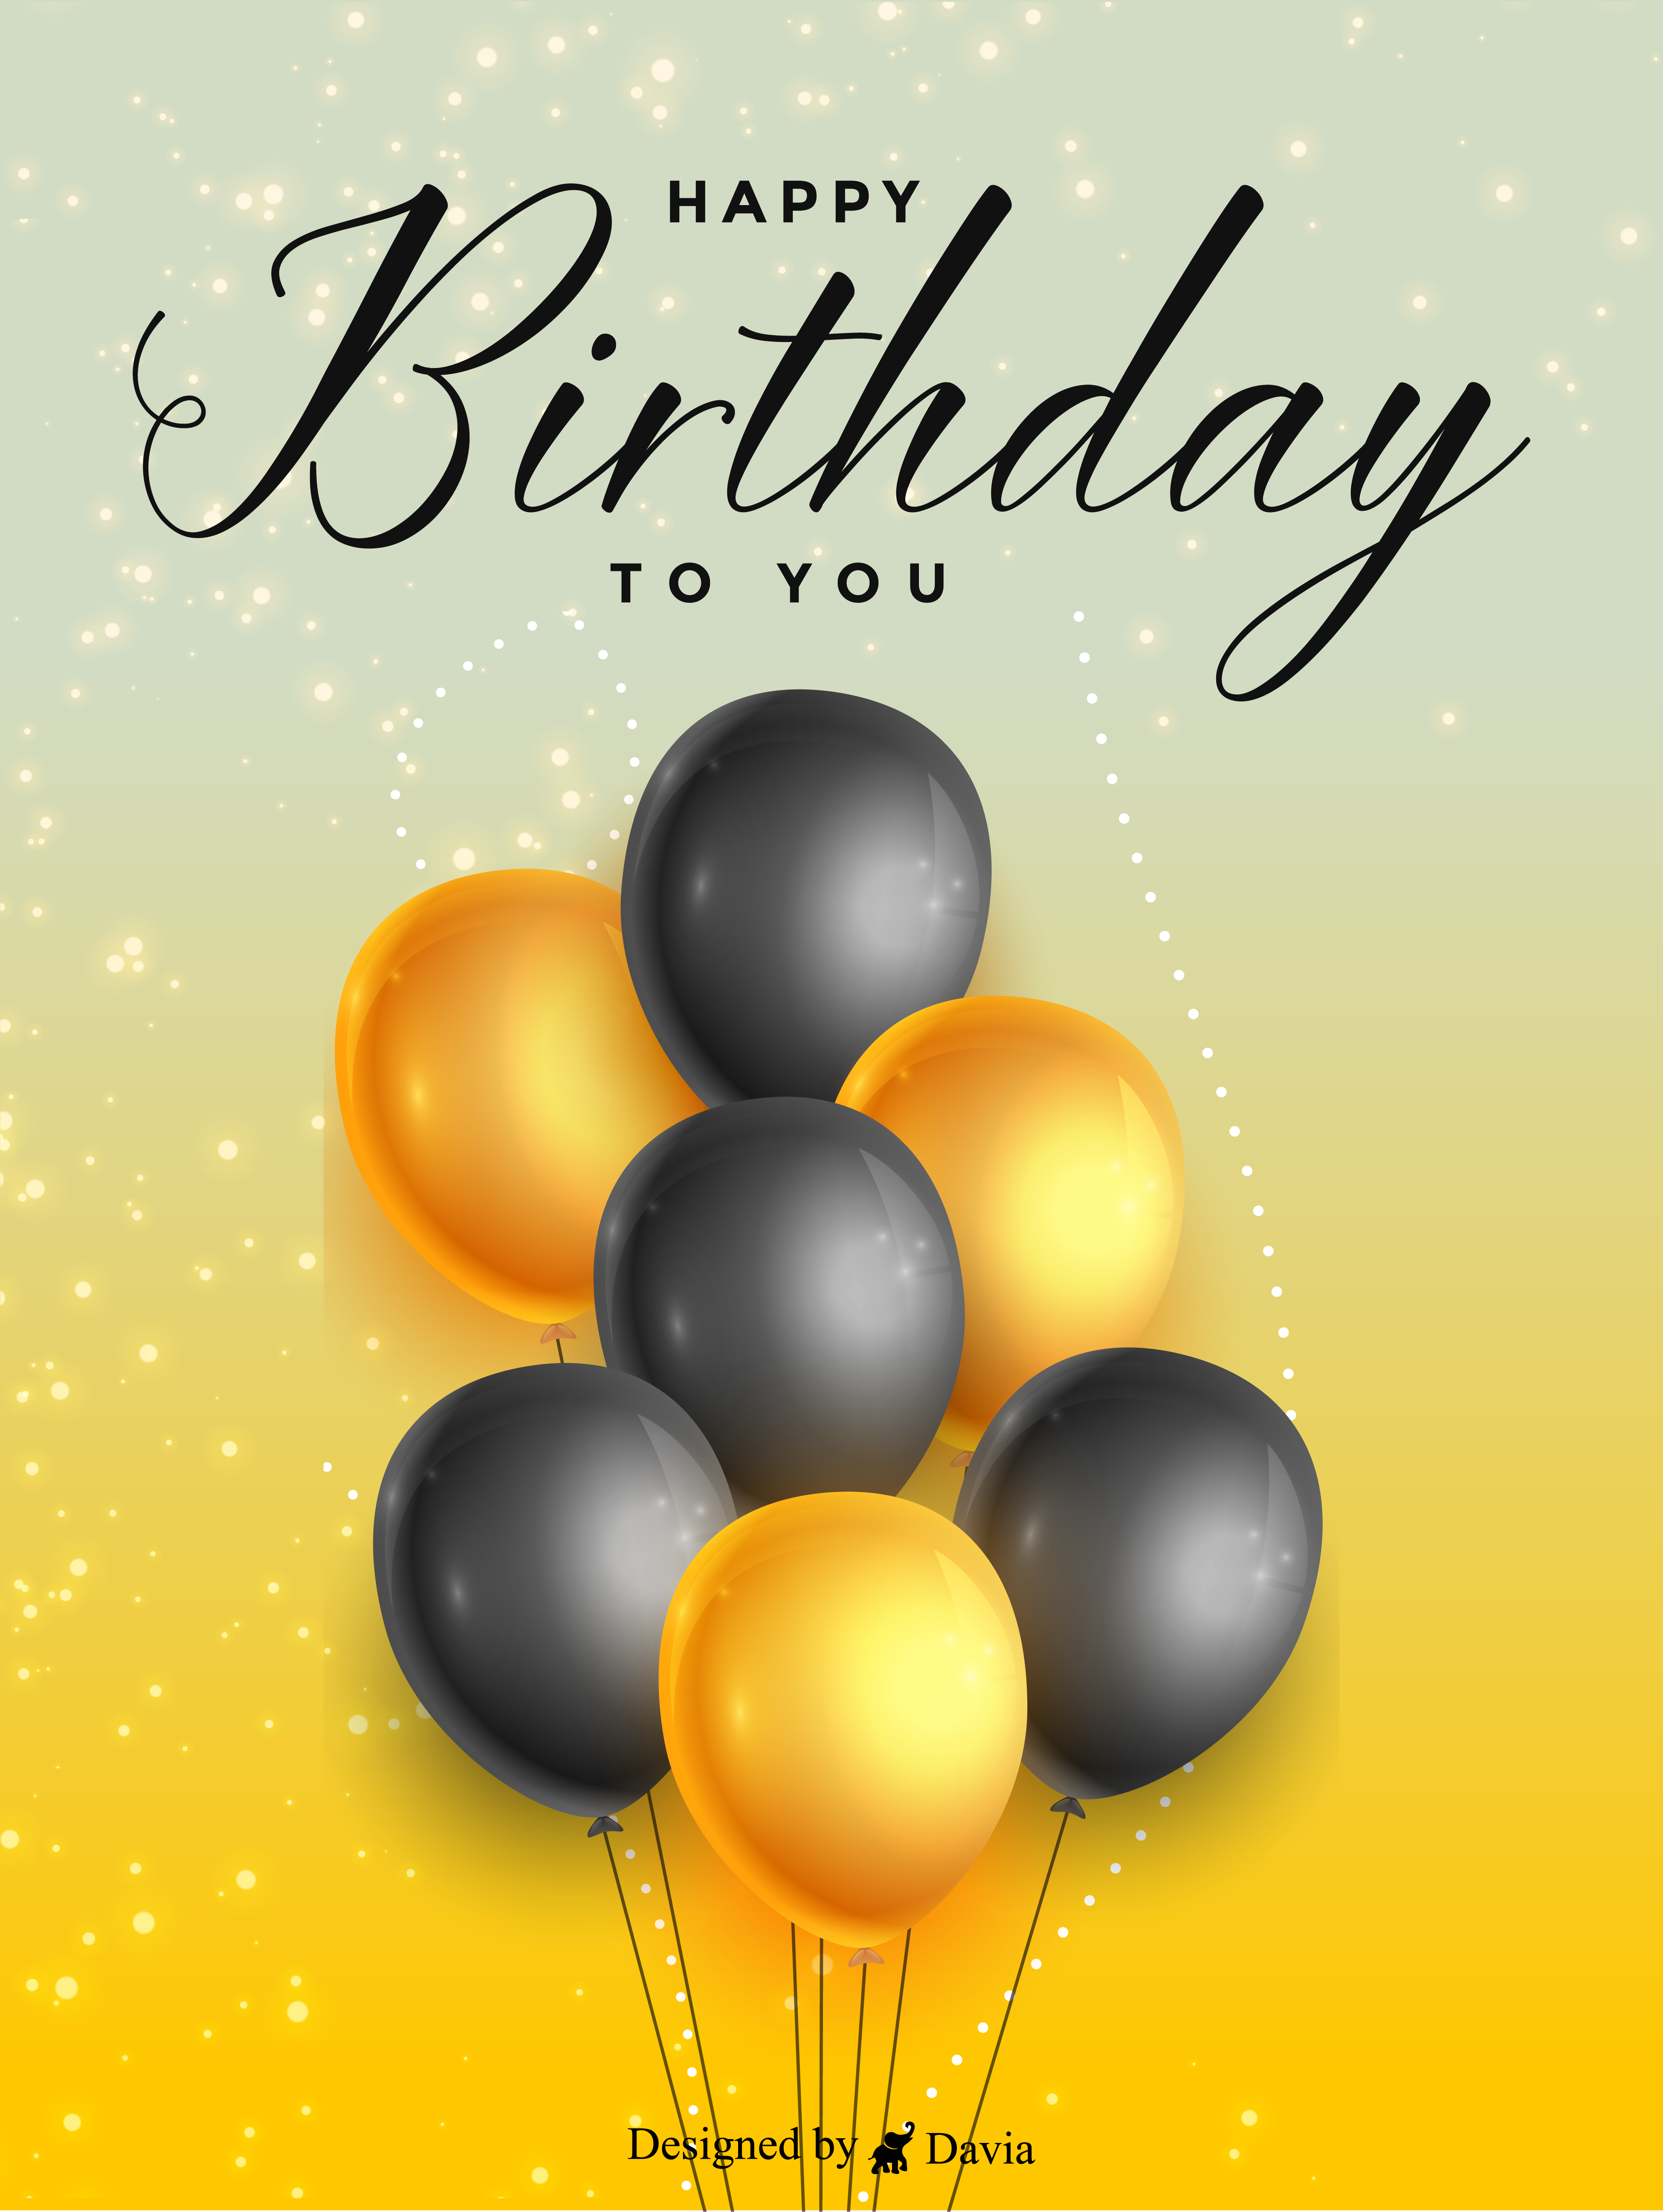 Pin On Birthday Cards For Him